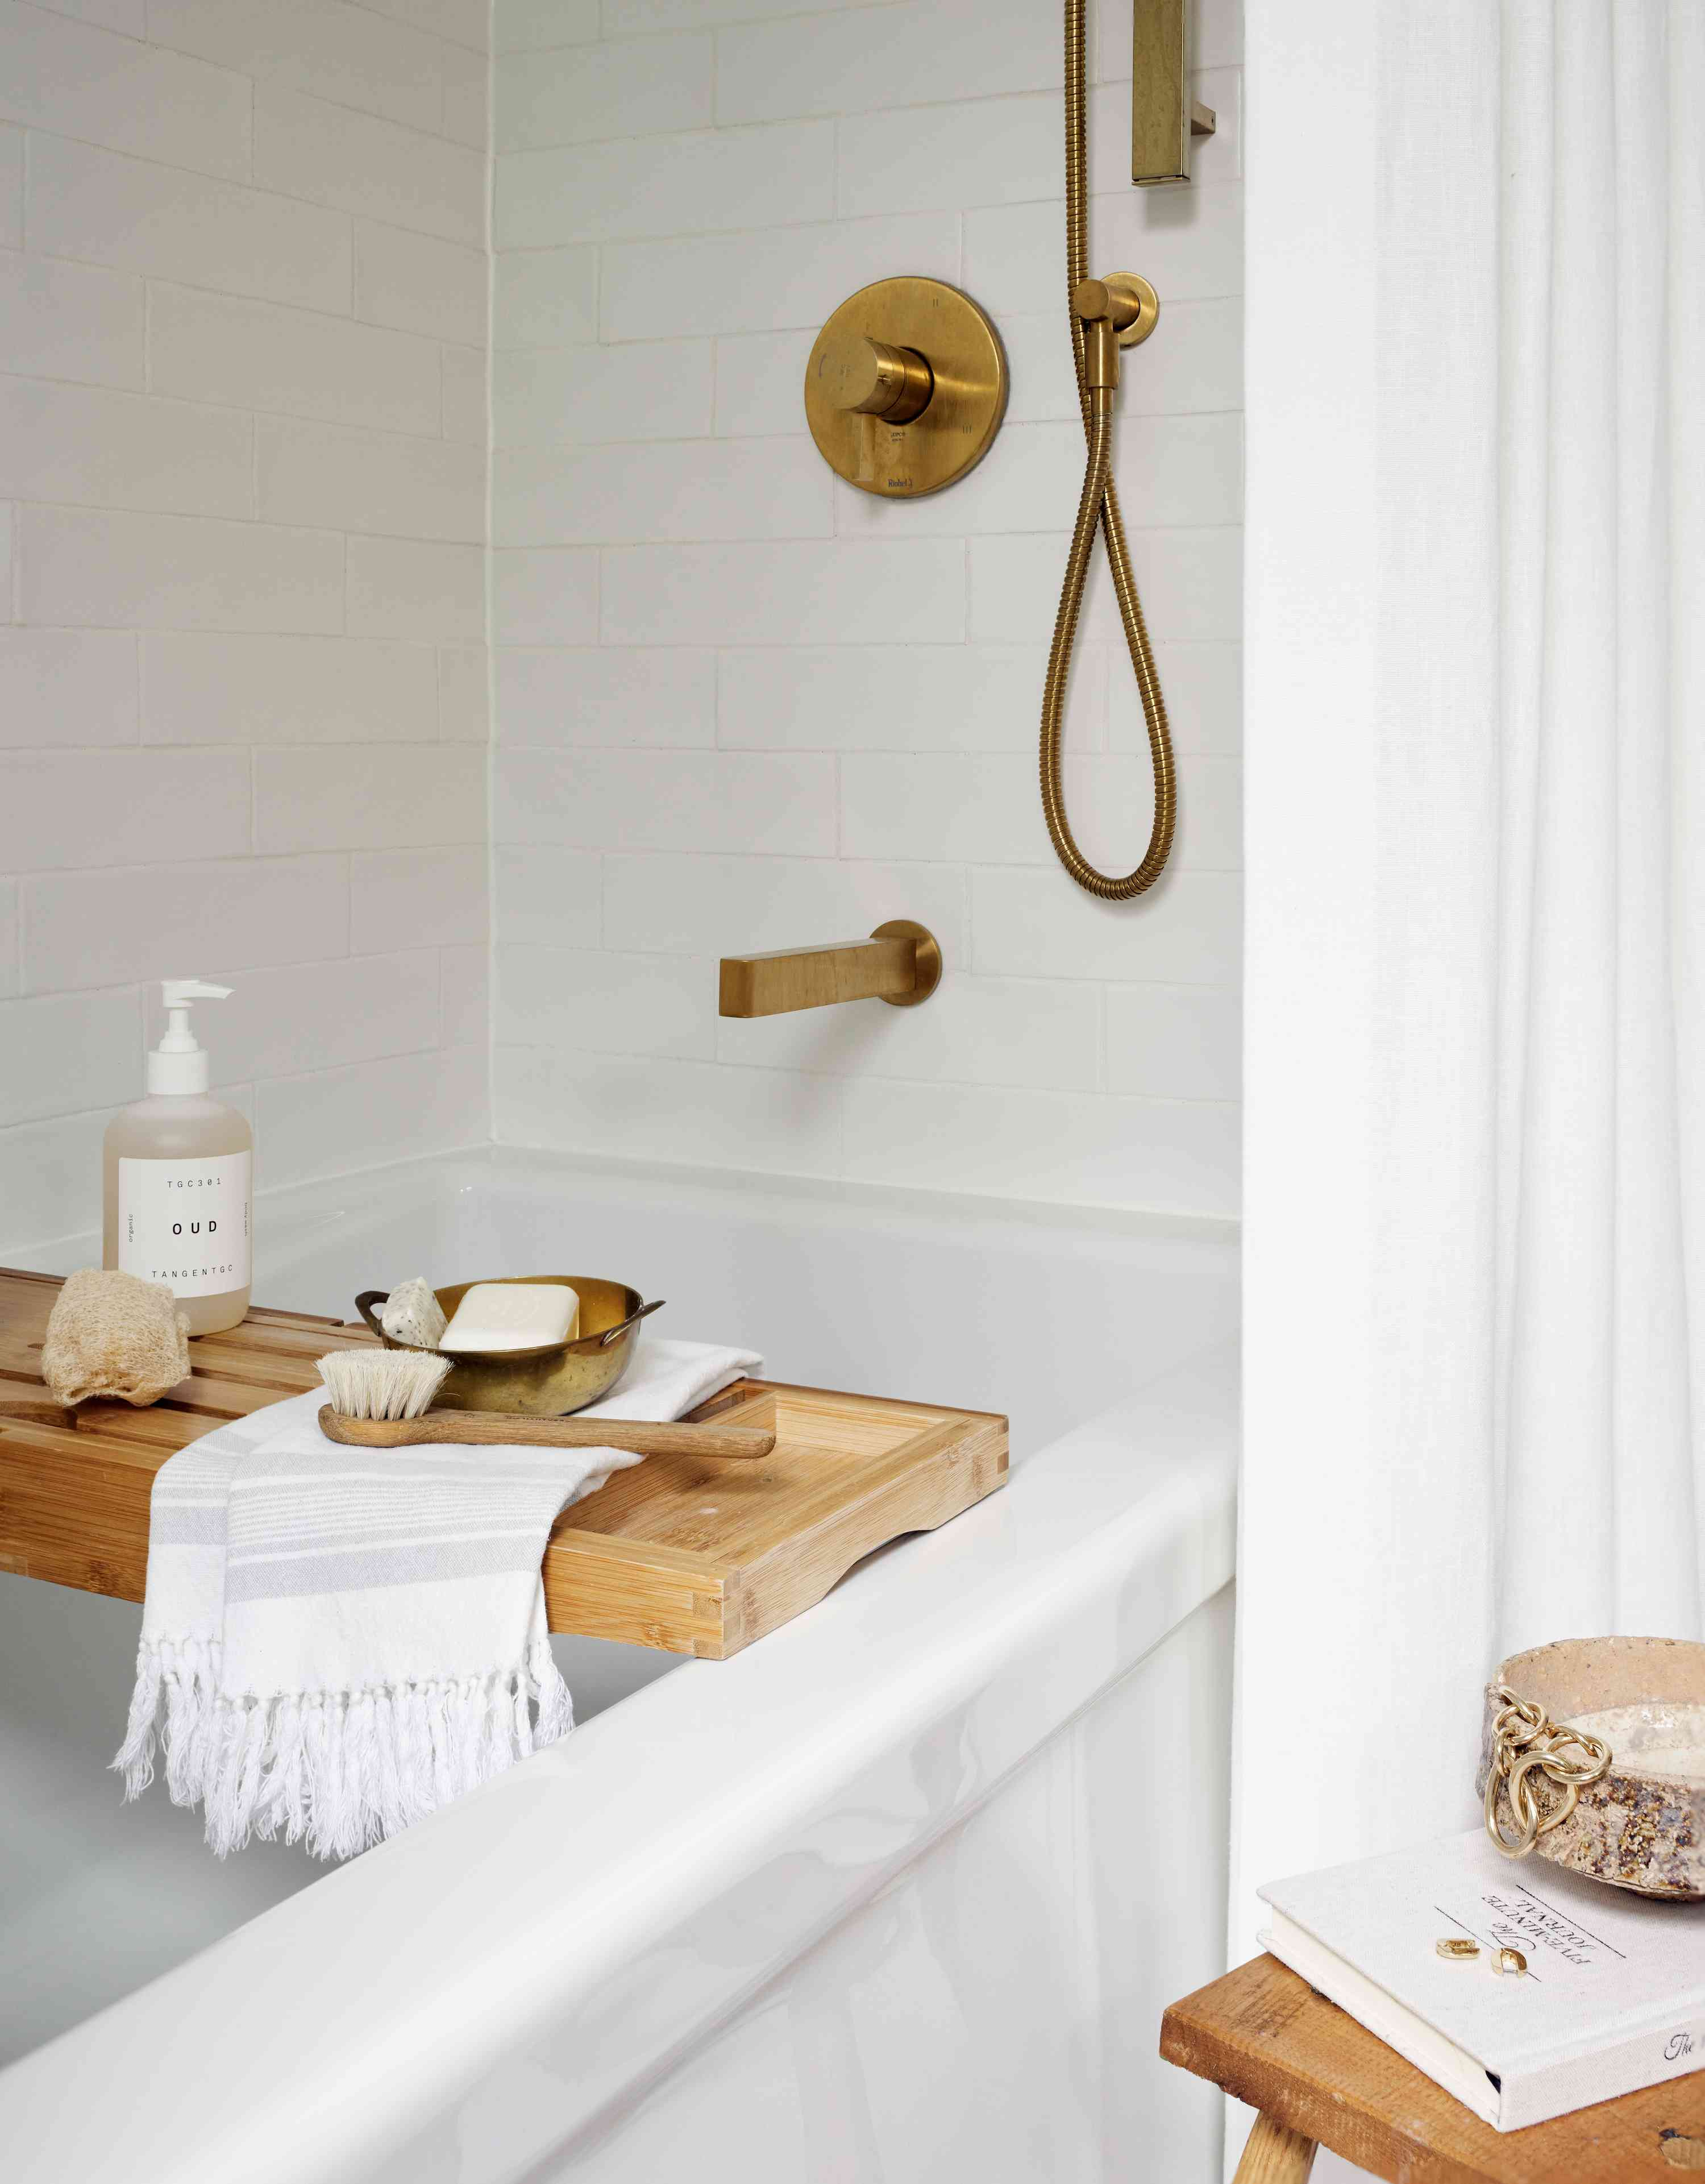 Luxurious bathtub with wooden tray.